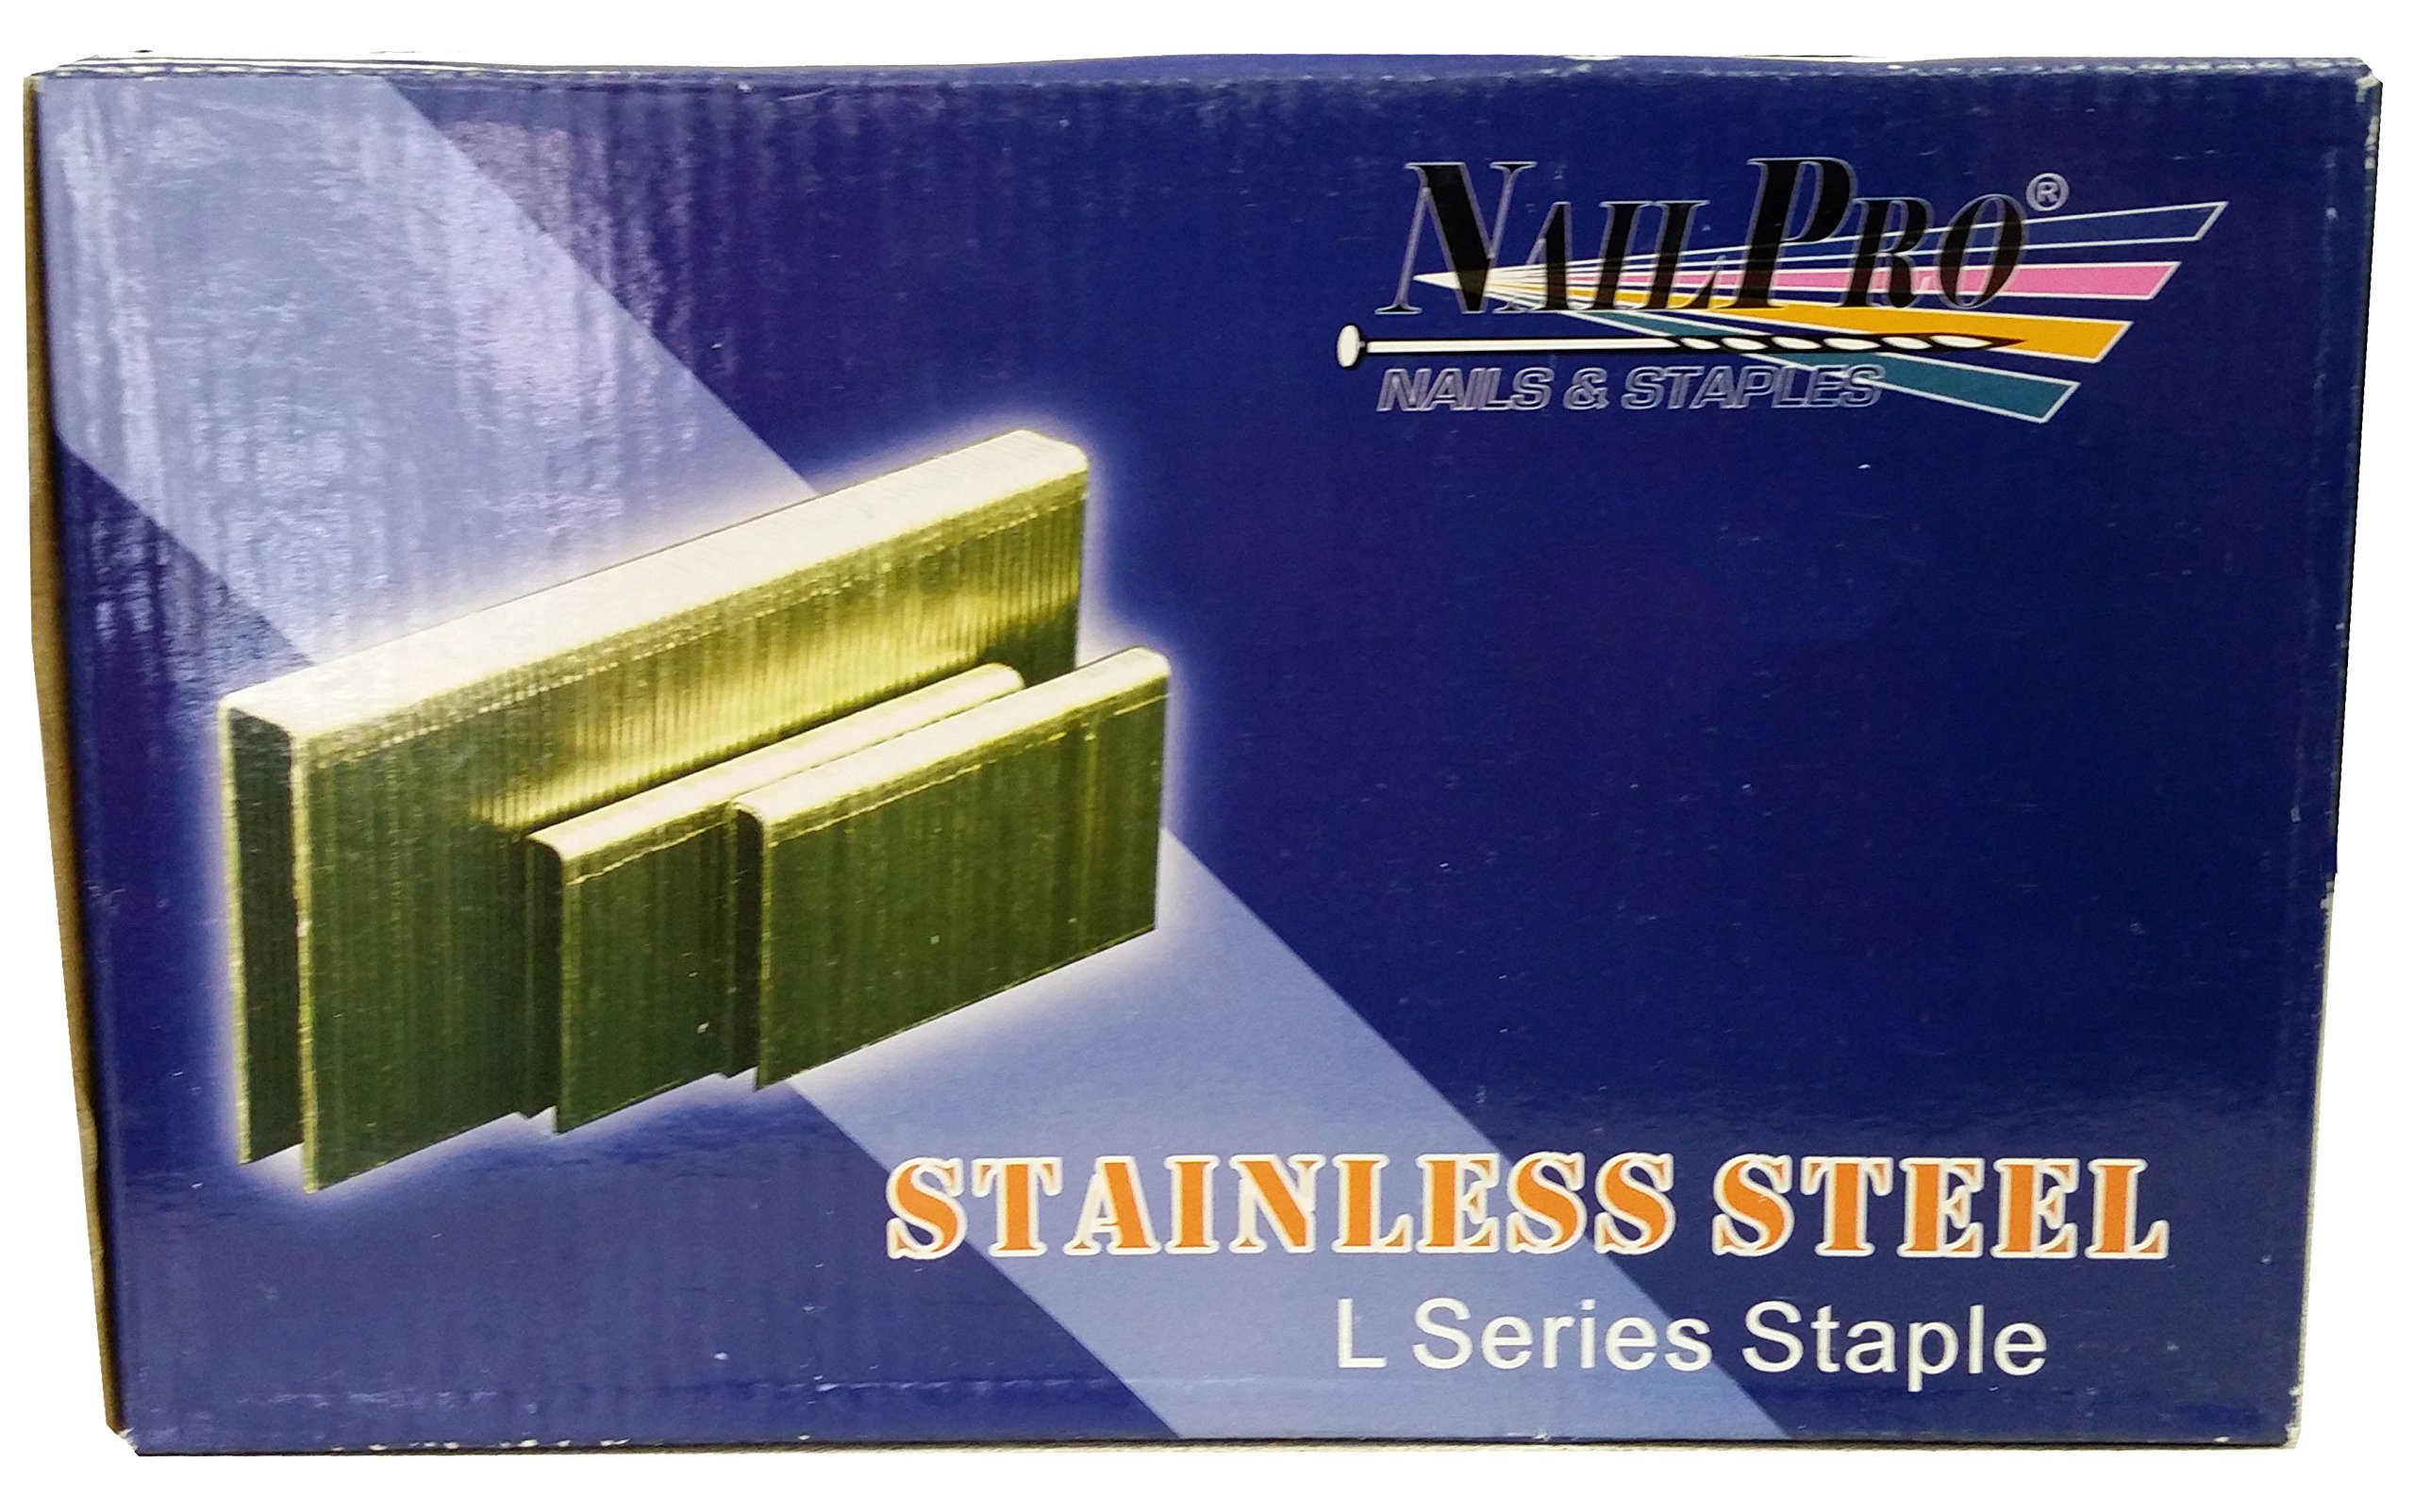 NailPro 1/4'' Crown x 1-1/2'' Leg Stainless Steel - 5,000 pcs. of ''L Series'' Staples - JAL17SS